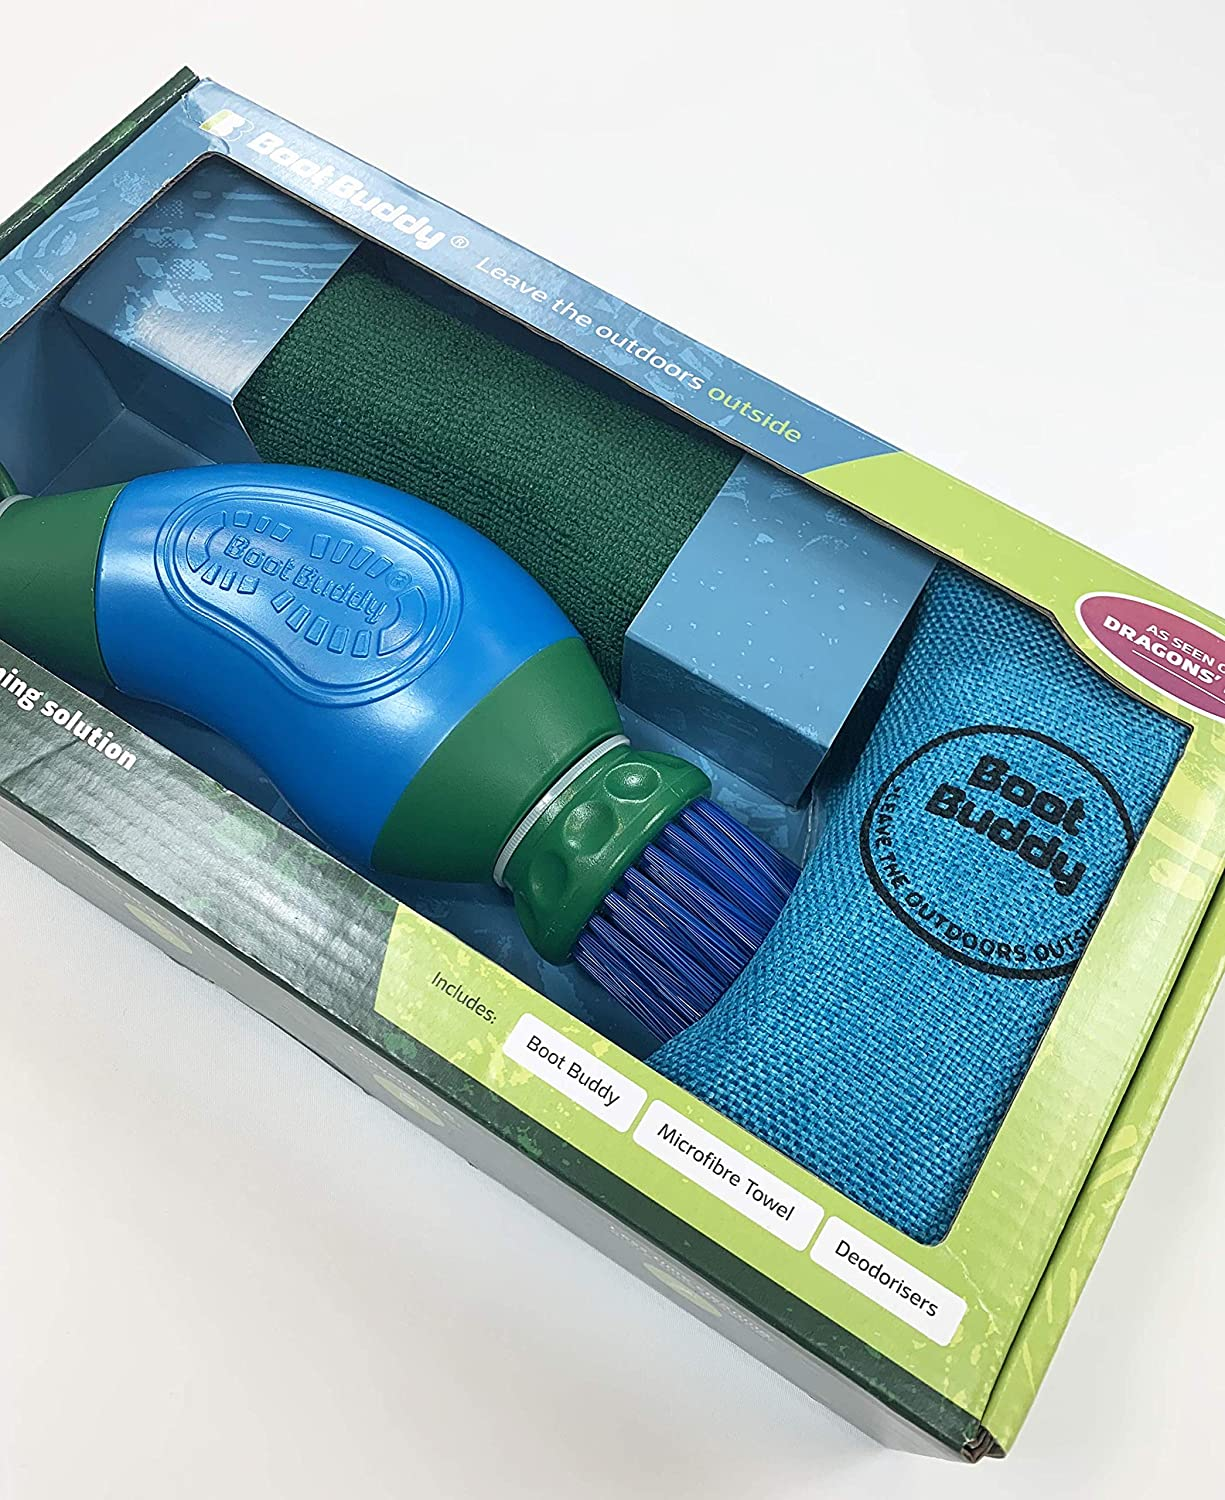 boot buddy GIFT SET - The newest